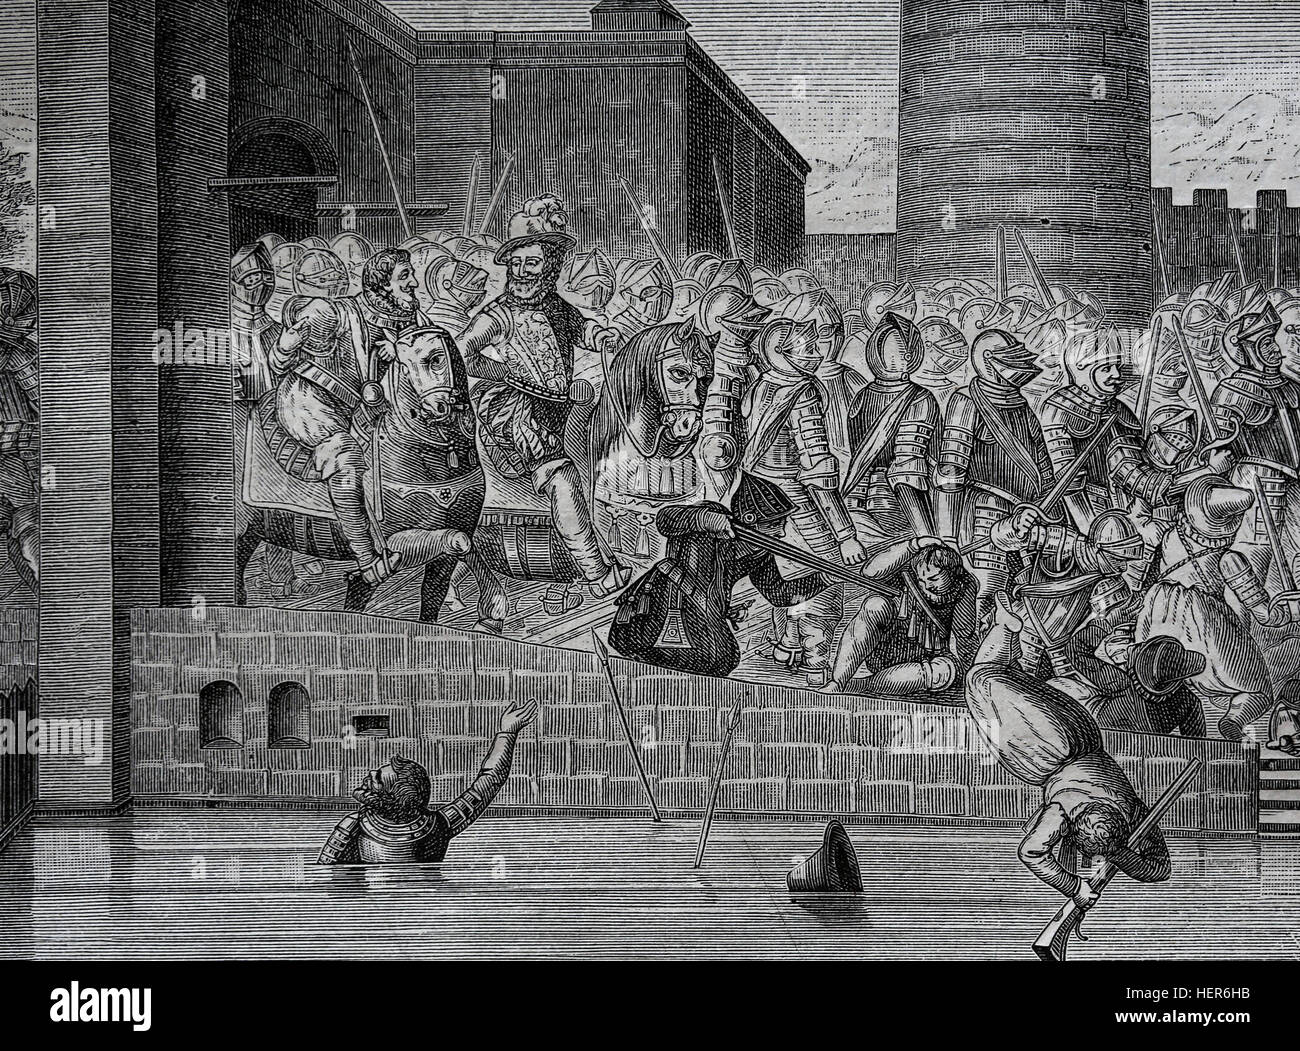 Henry IV of France (1553-1610). Entrance of Henry Iv in Paris, 22 March 1594, with 1500 cuirassiers. Engraving by - Stock Image